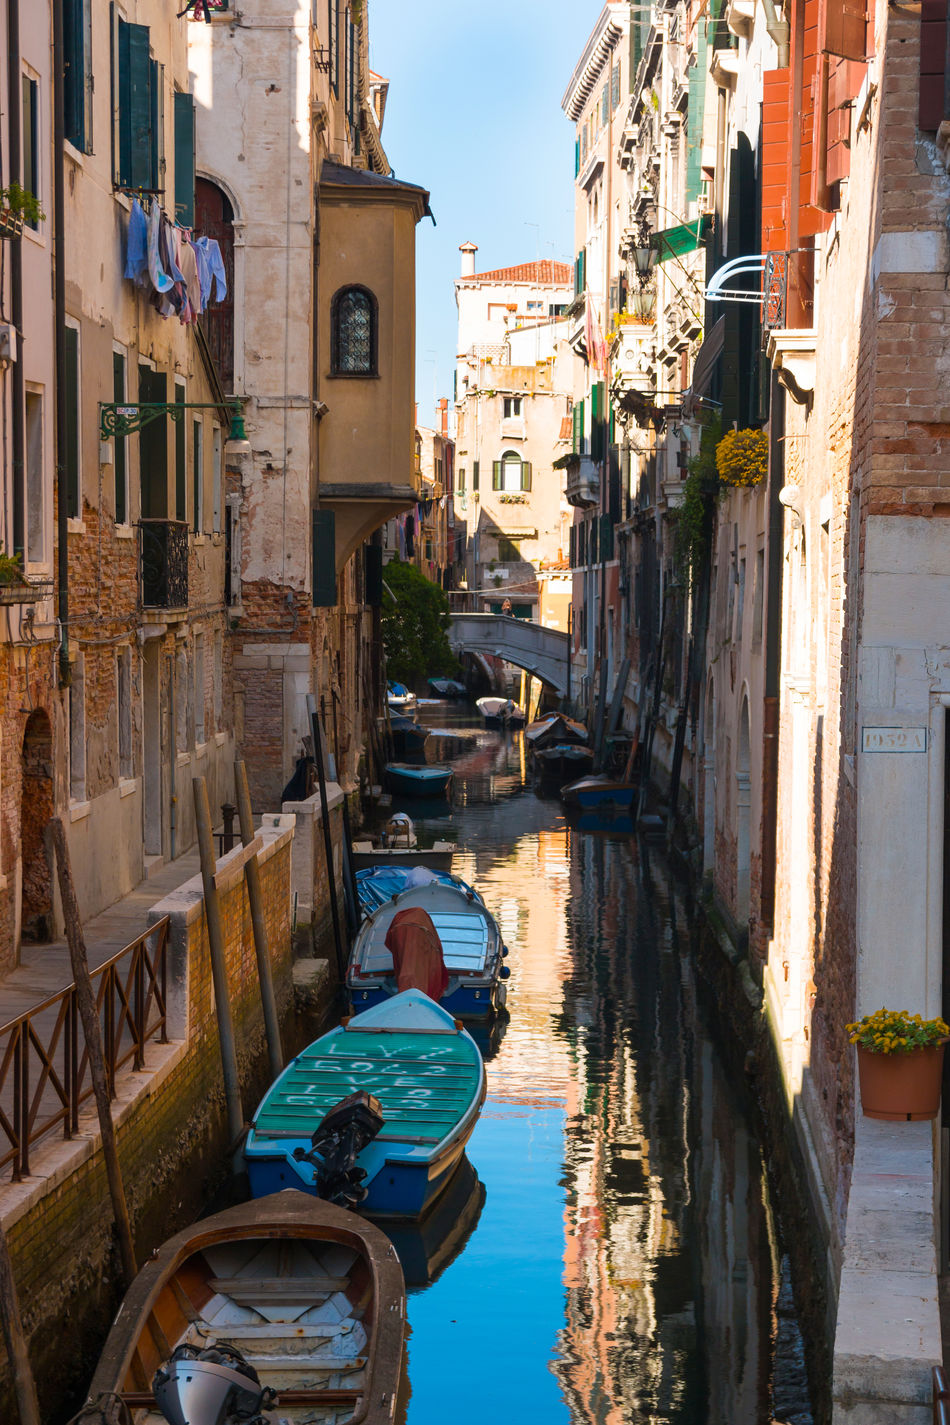 Architecture Building Exterior Built Structure Canal Day Italy Moored Nautical Vessel No People Outdoors Sky Transportation Venice, Italy Water